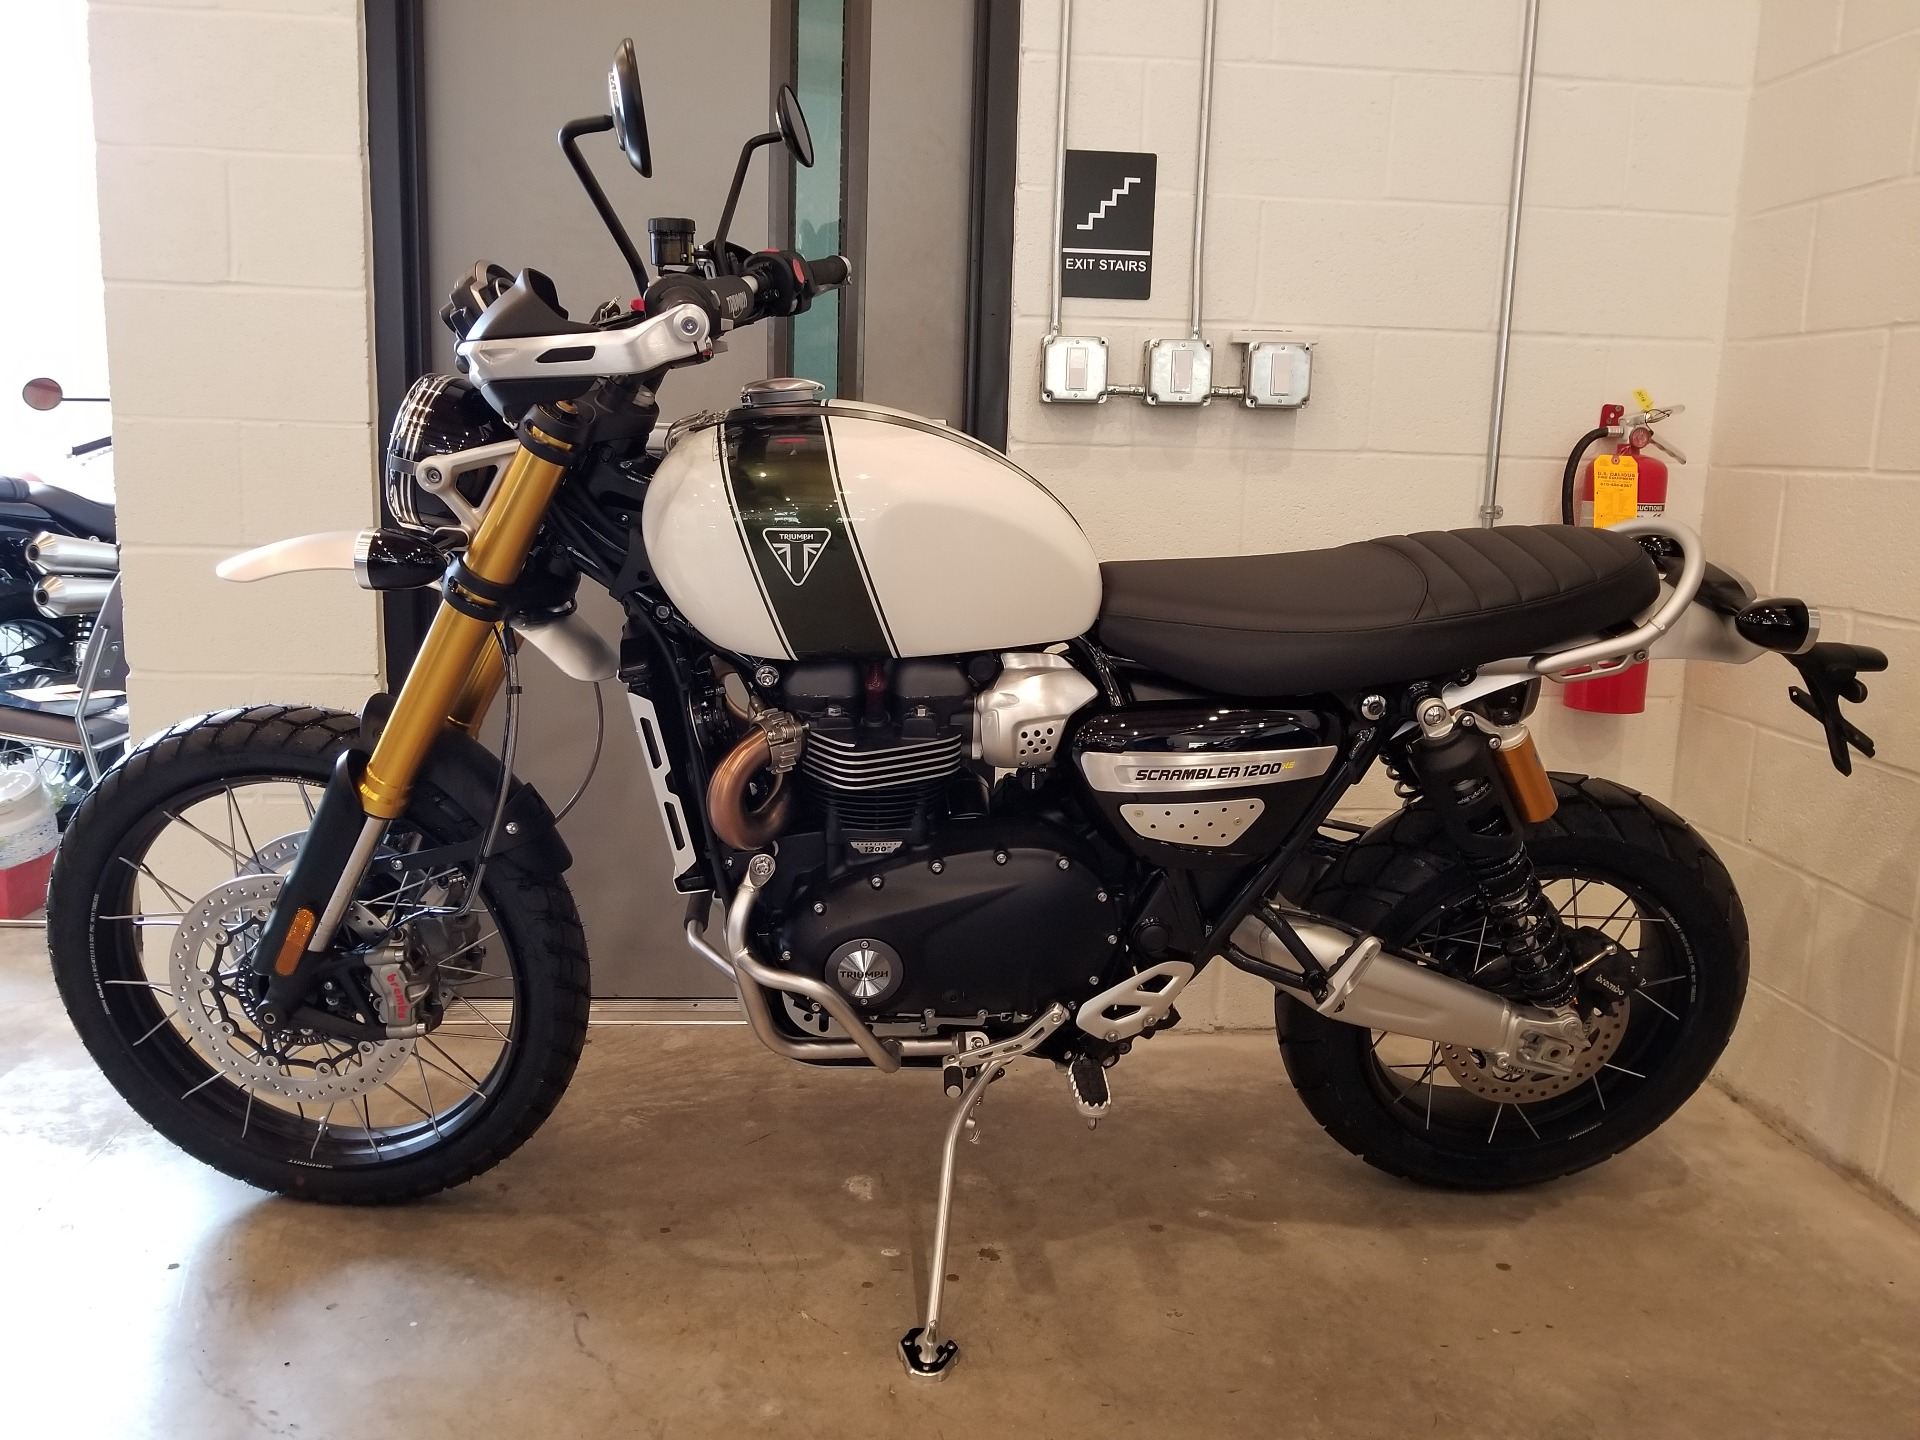 2019 Triumph Scrambler 1200 XE in Port Clinton, Pennsylvania - Photo 3